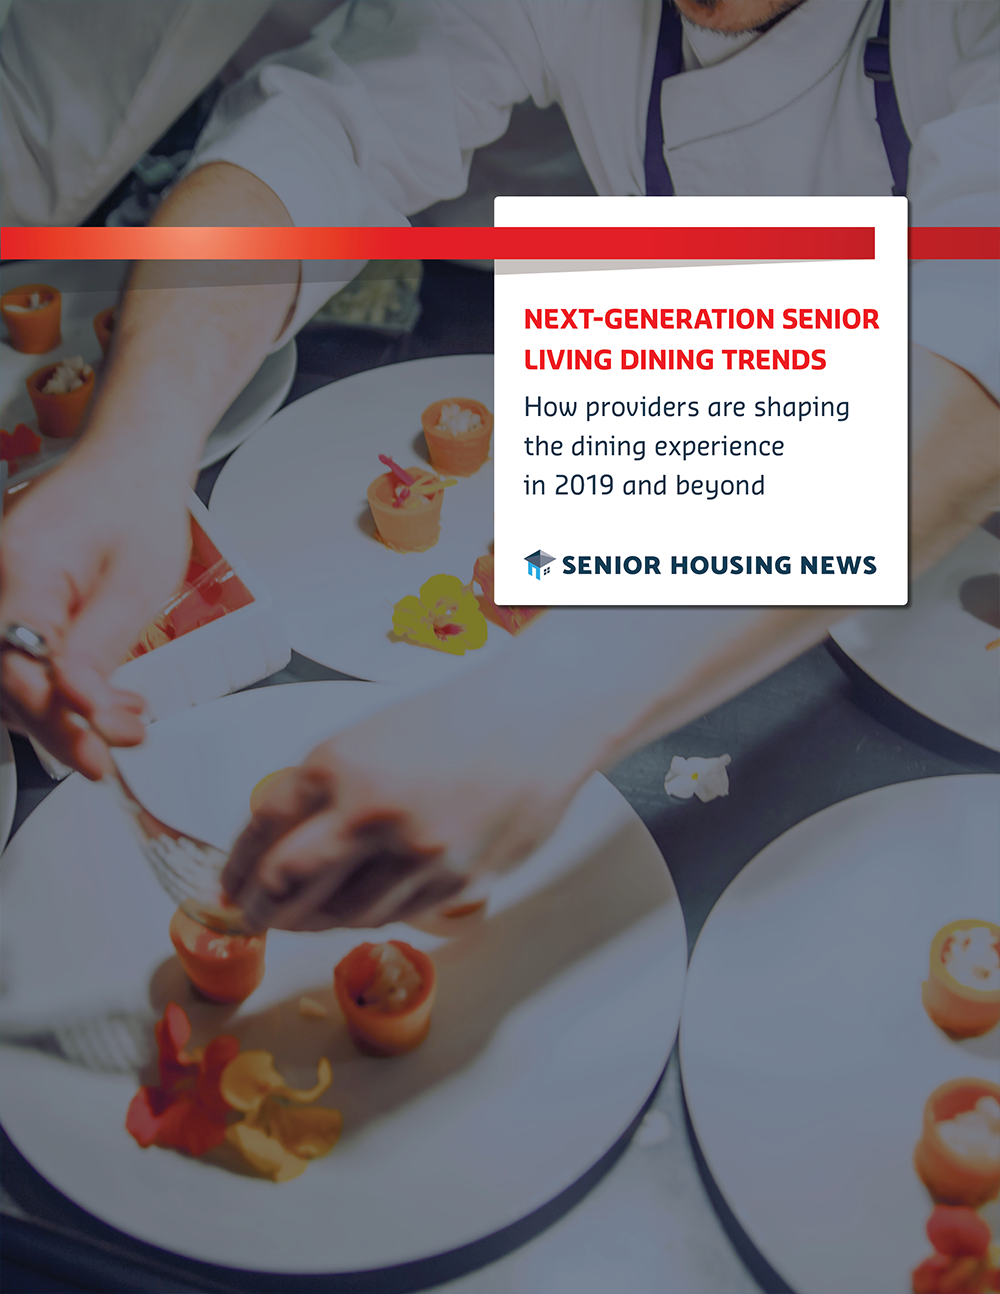 [Report] Next-Generation Senior Living Dining Trends